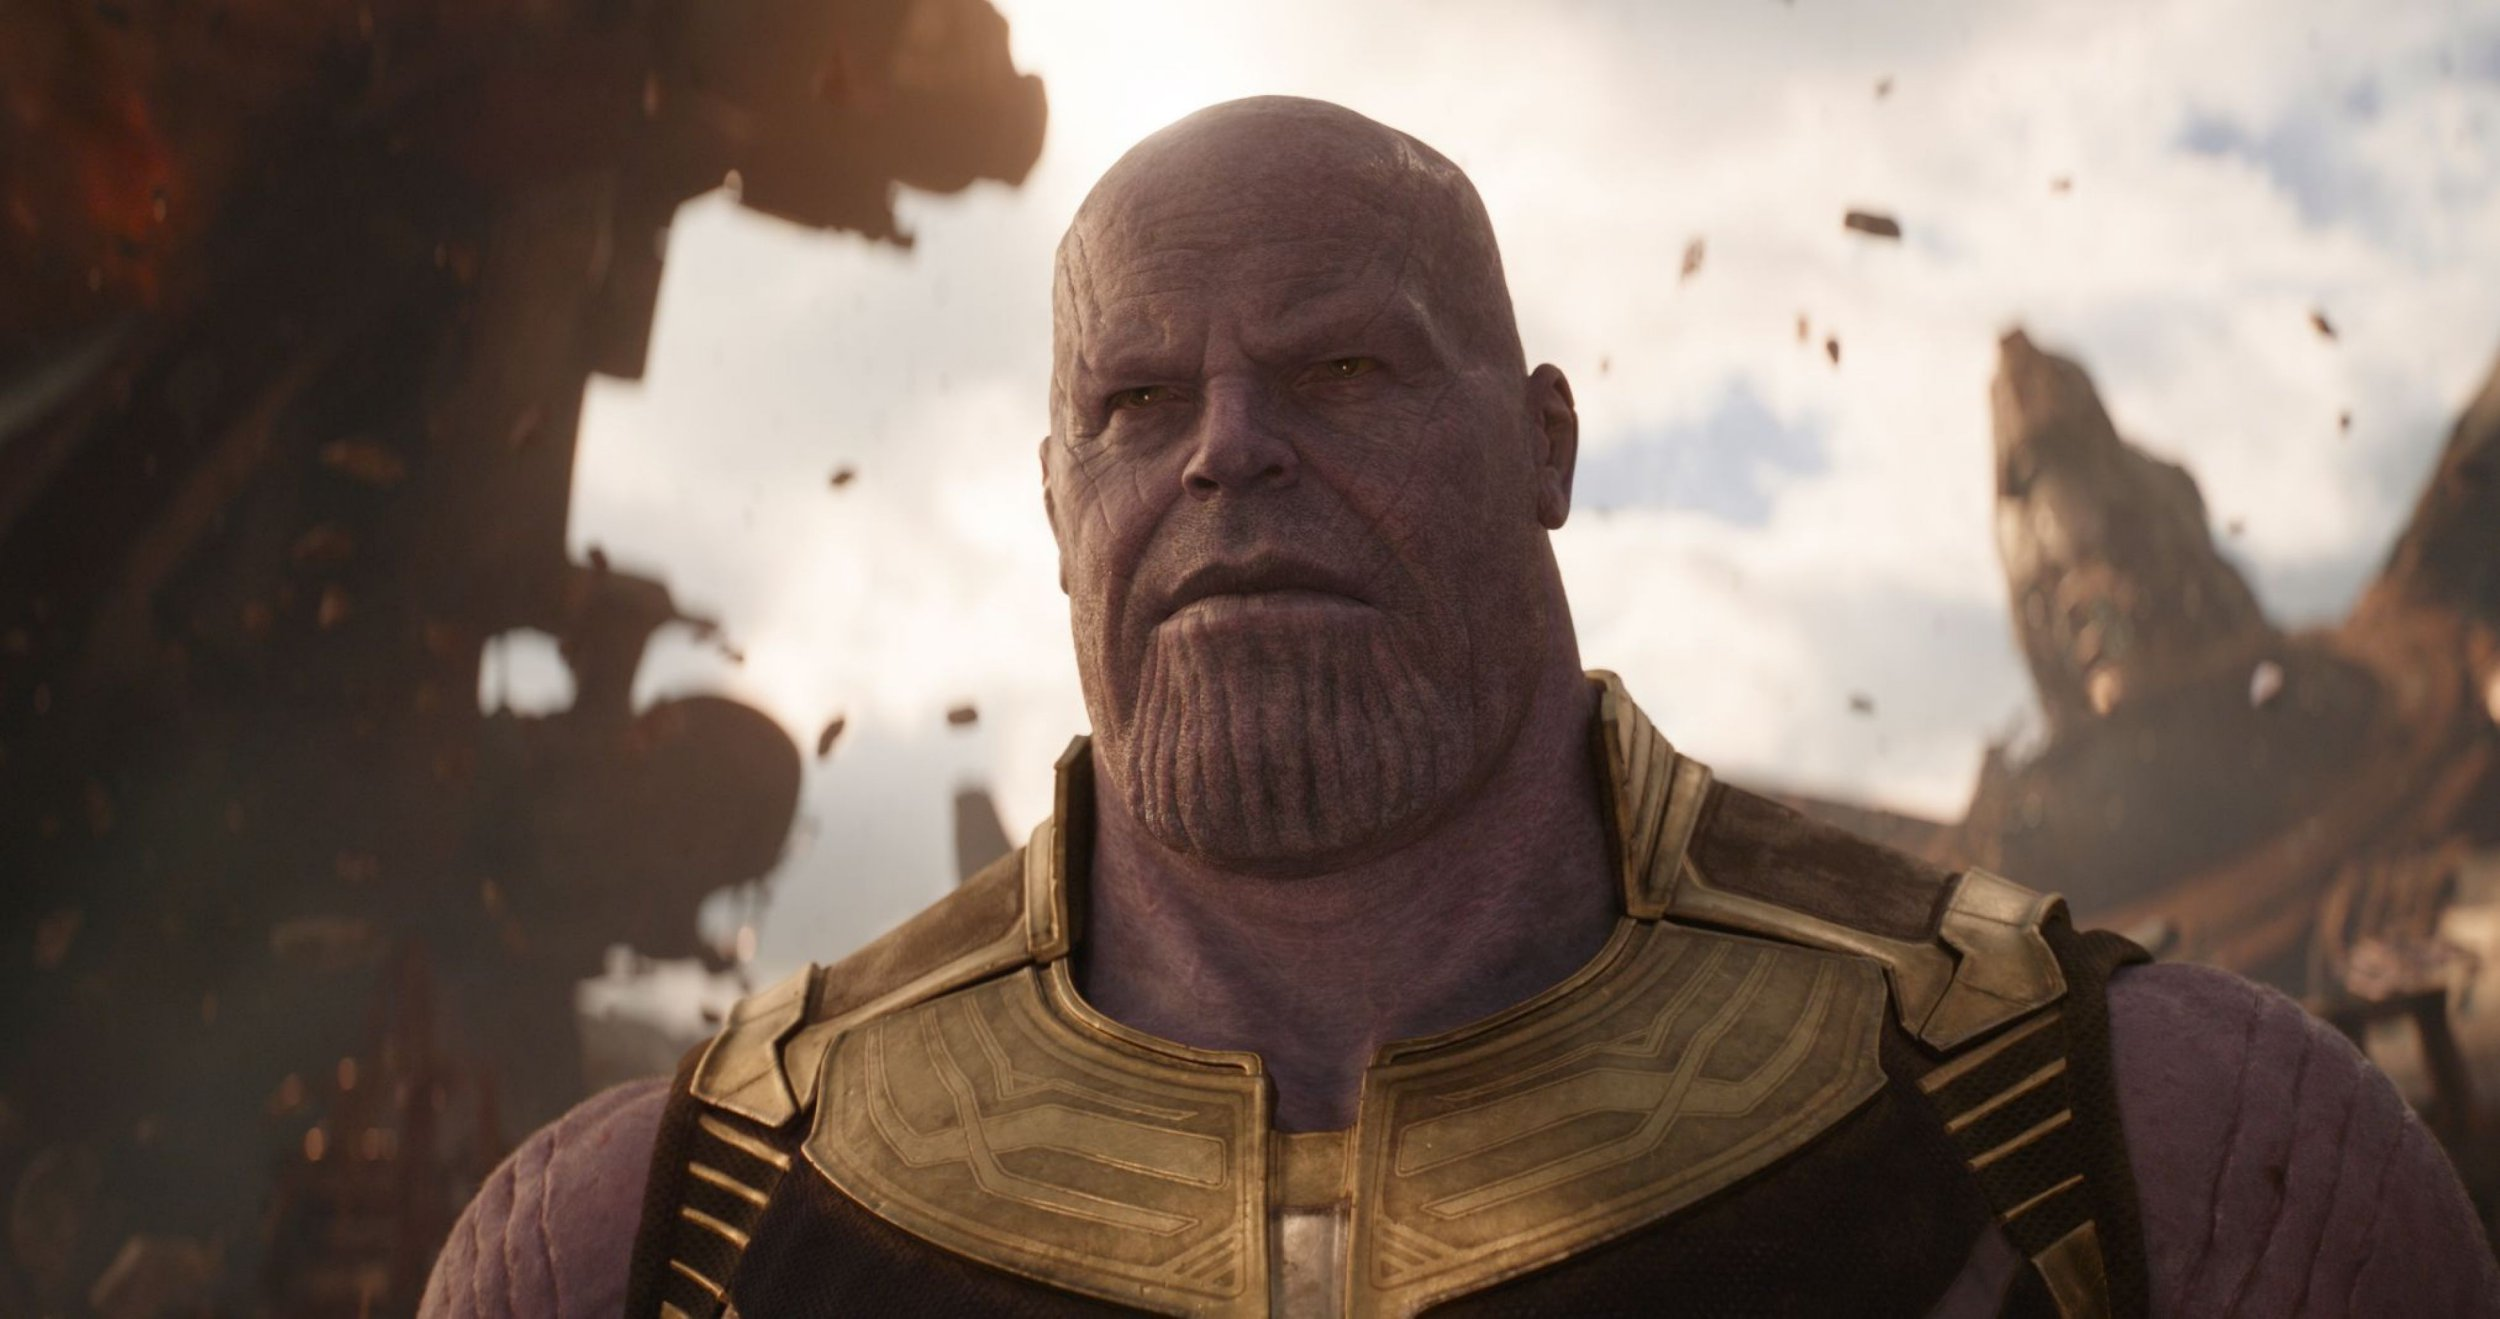 Thanos was originally meant to narrate Avengers: Infinity War